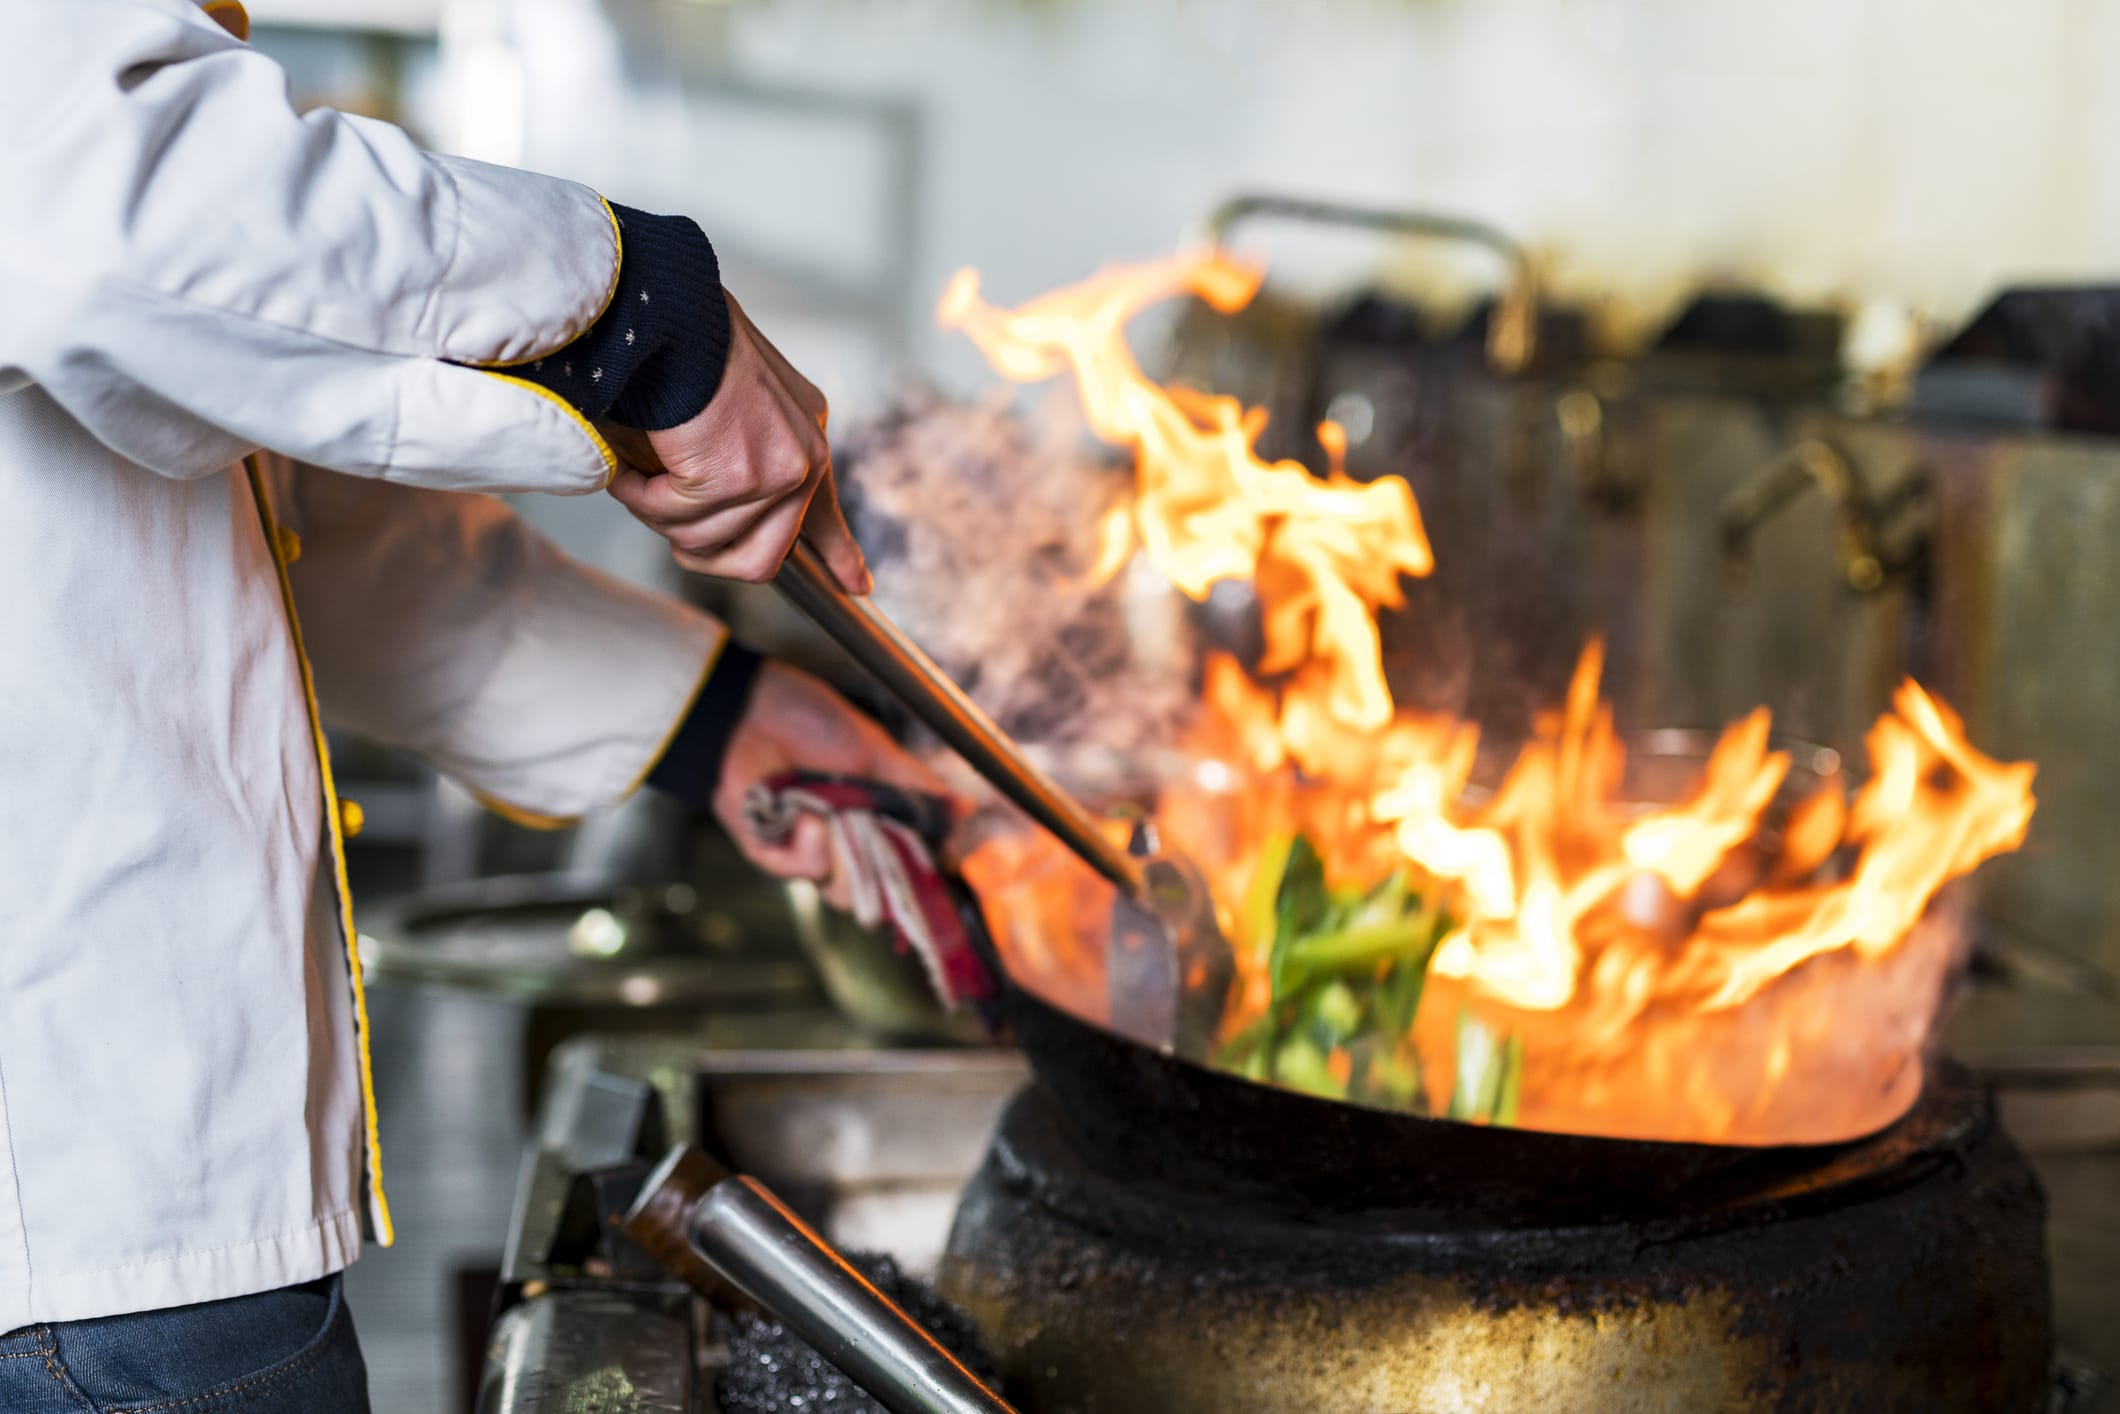 Is Your Restaurant Safe? All About UL 300 Compliance - Fraker Fire Protection